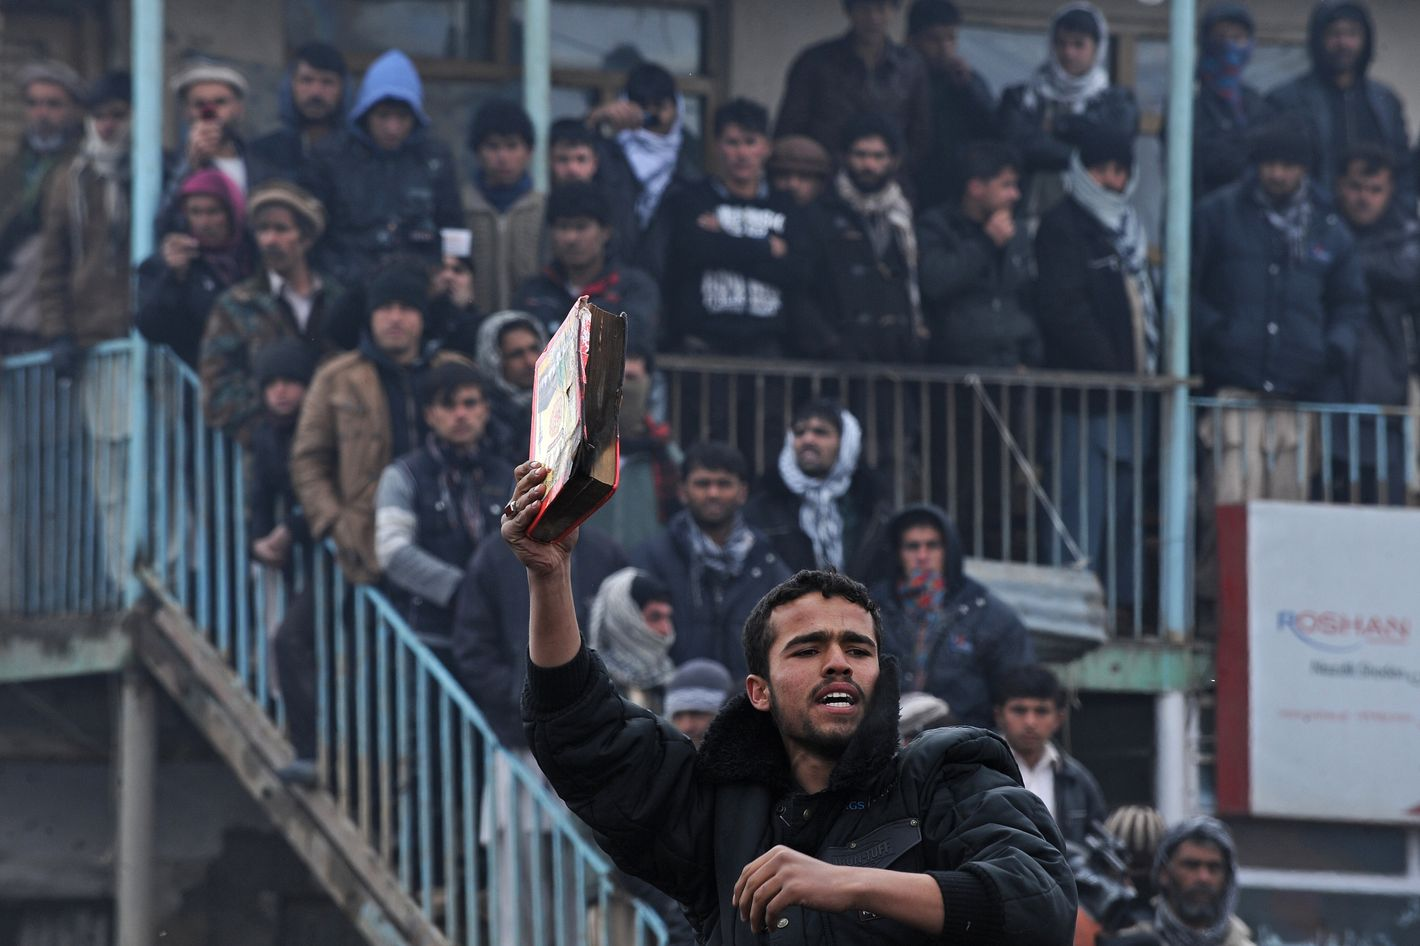 An Afghan demonstrator holds a copy of a half-burnt Koran, allegedly set on fire by US soldiers, at the gate of Bagram airbase during a protest against Koran desecration at Bagram, about 60 kilometres (40 miles) north of Kabul, on February 21, 2012.